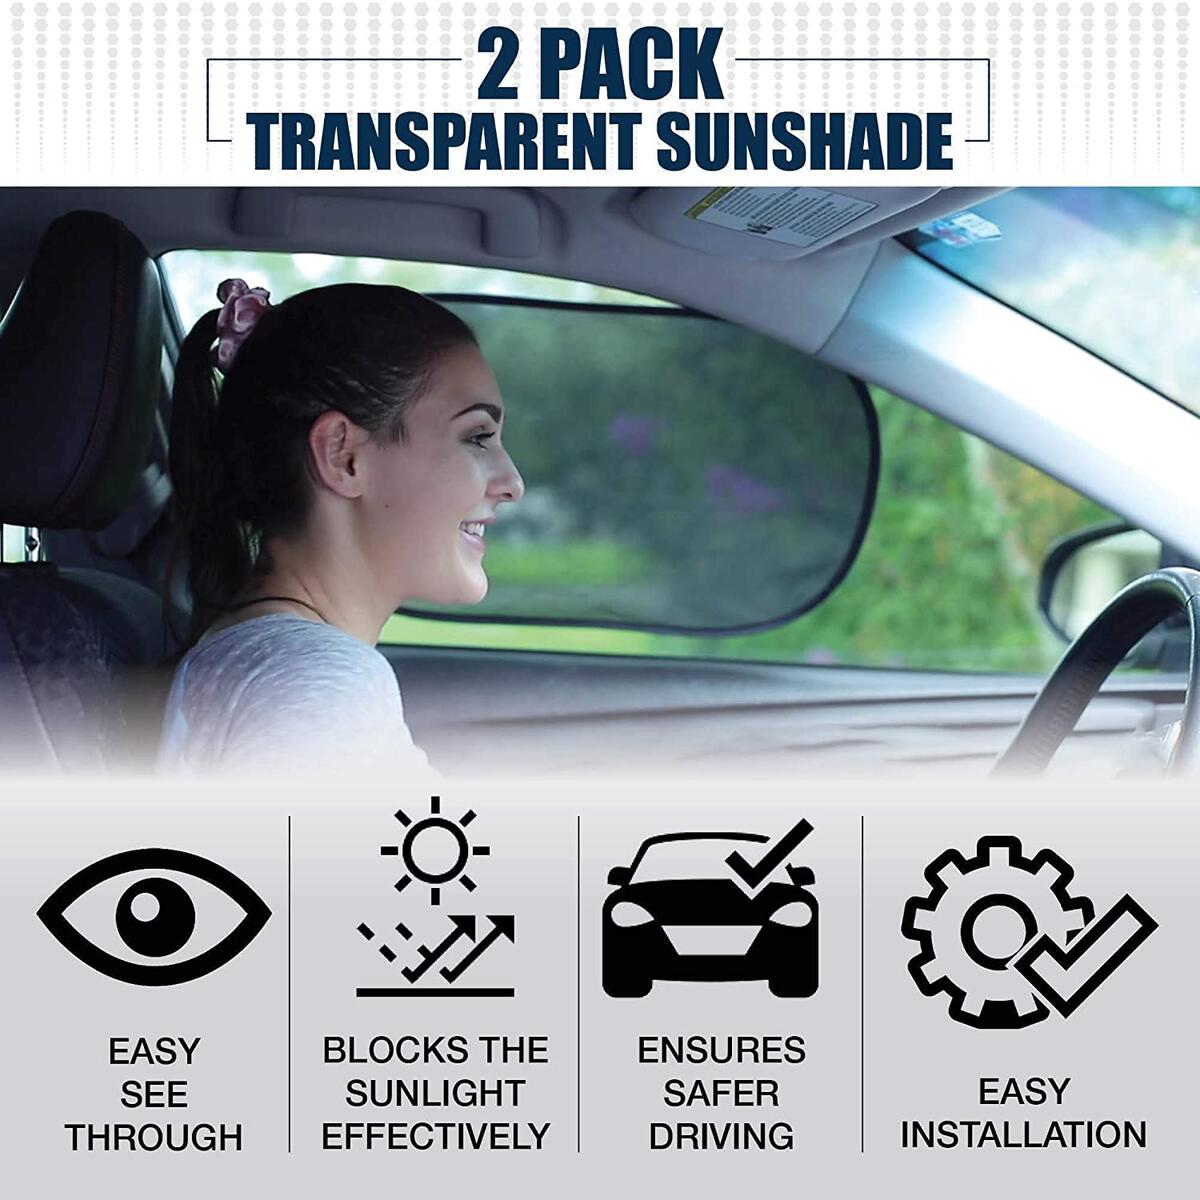 EcoNour Car Window Sun Shade (2 Pack Transparent+ 2 Pack Semi Transparent)   Car Sun Protector with 80 GSM and 15s Film Blocks Sun, Glare and UV Rays   Baby Side Window Sunshades (20